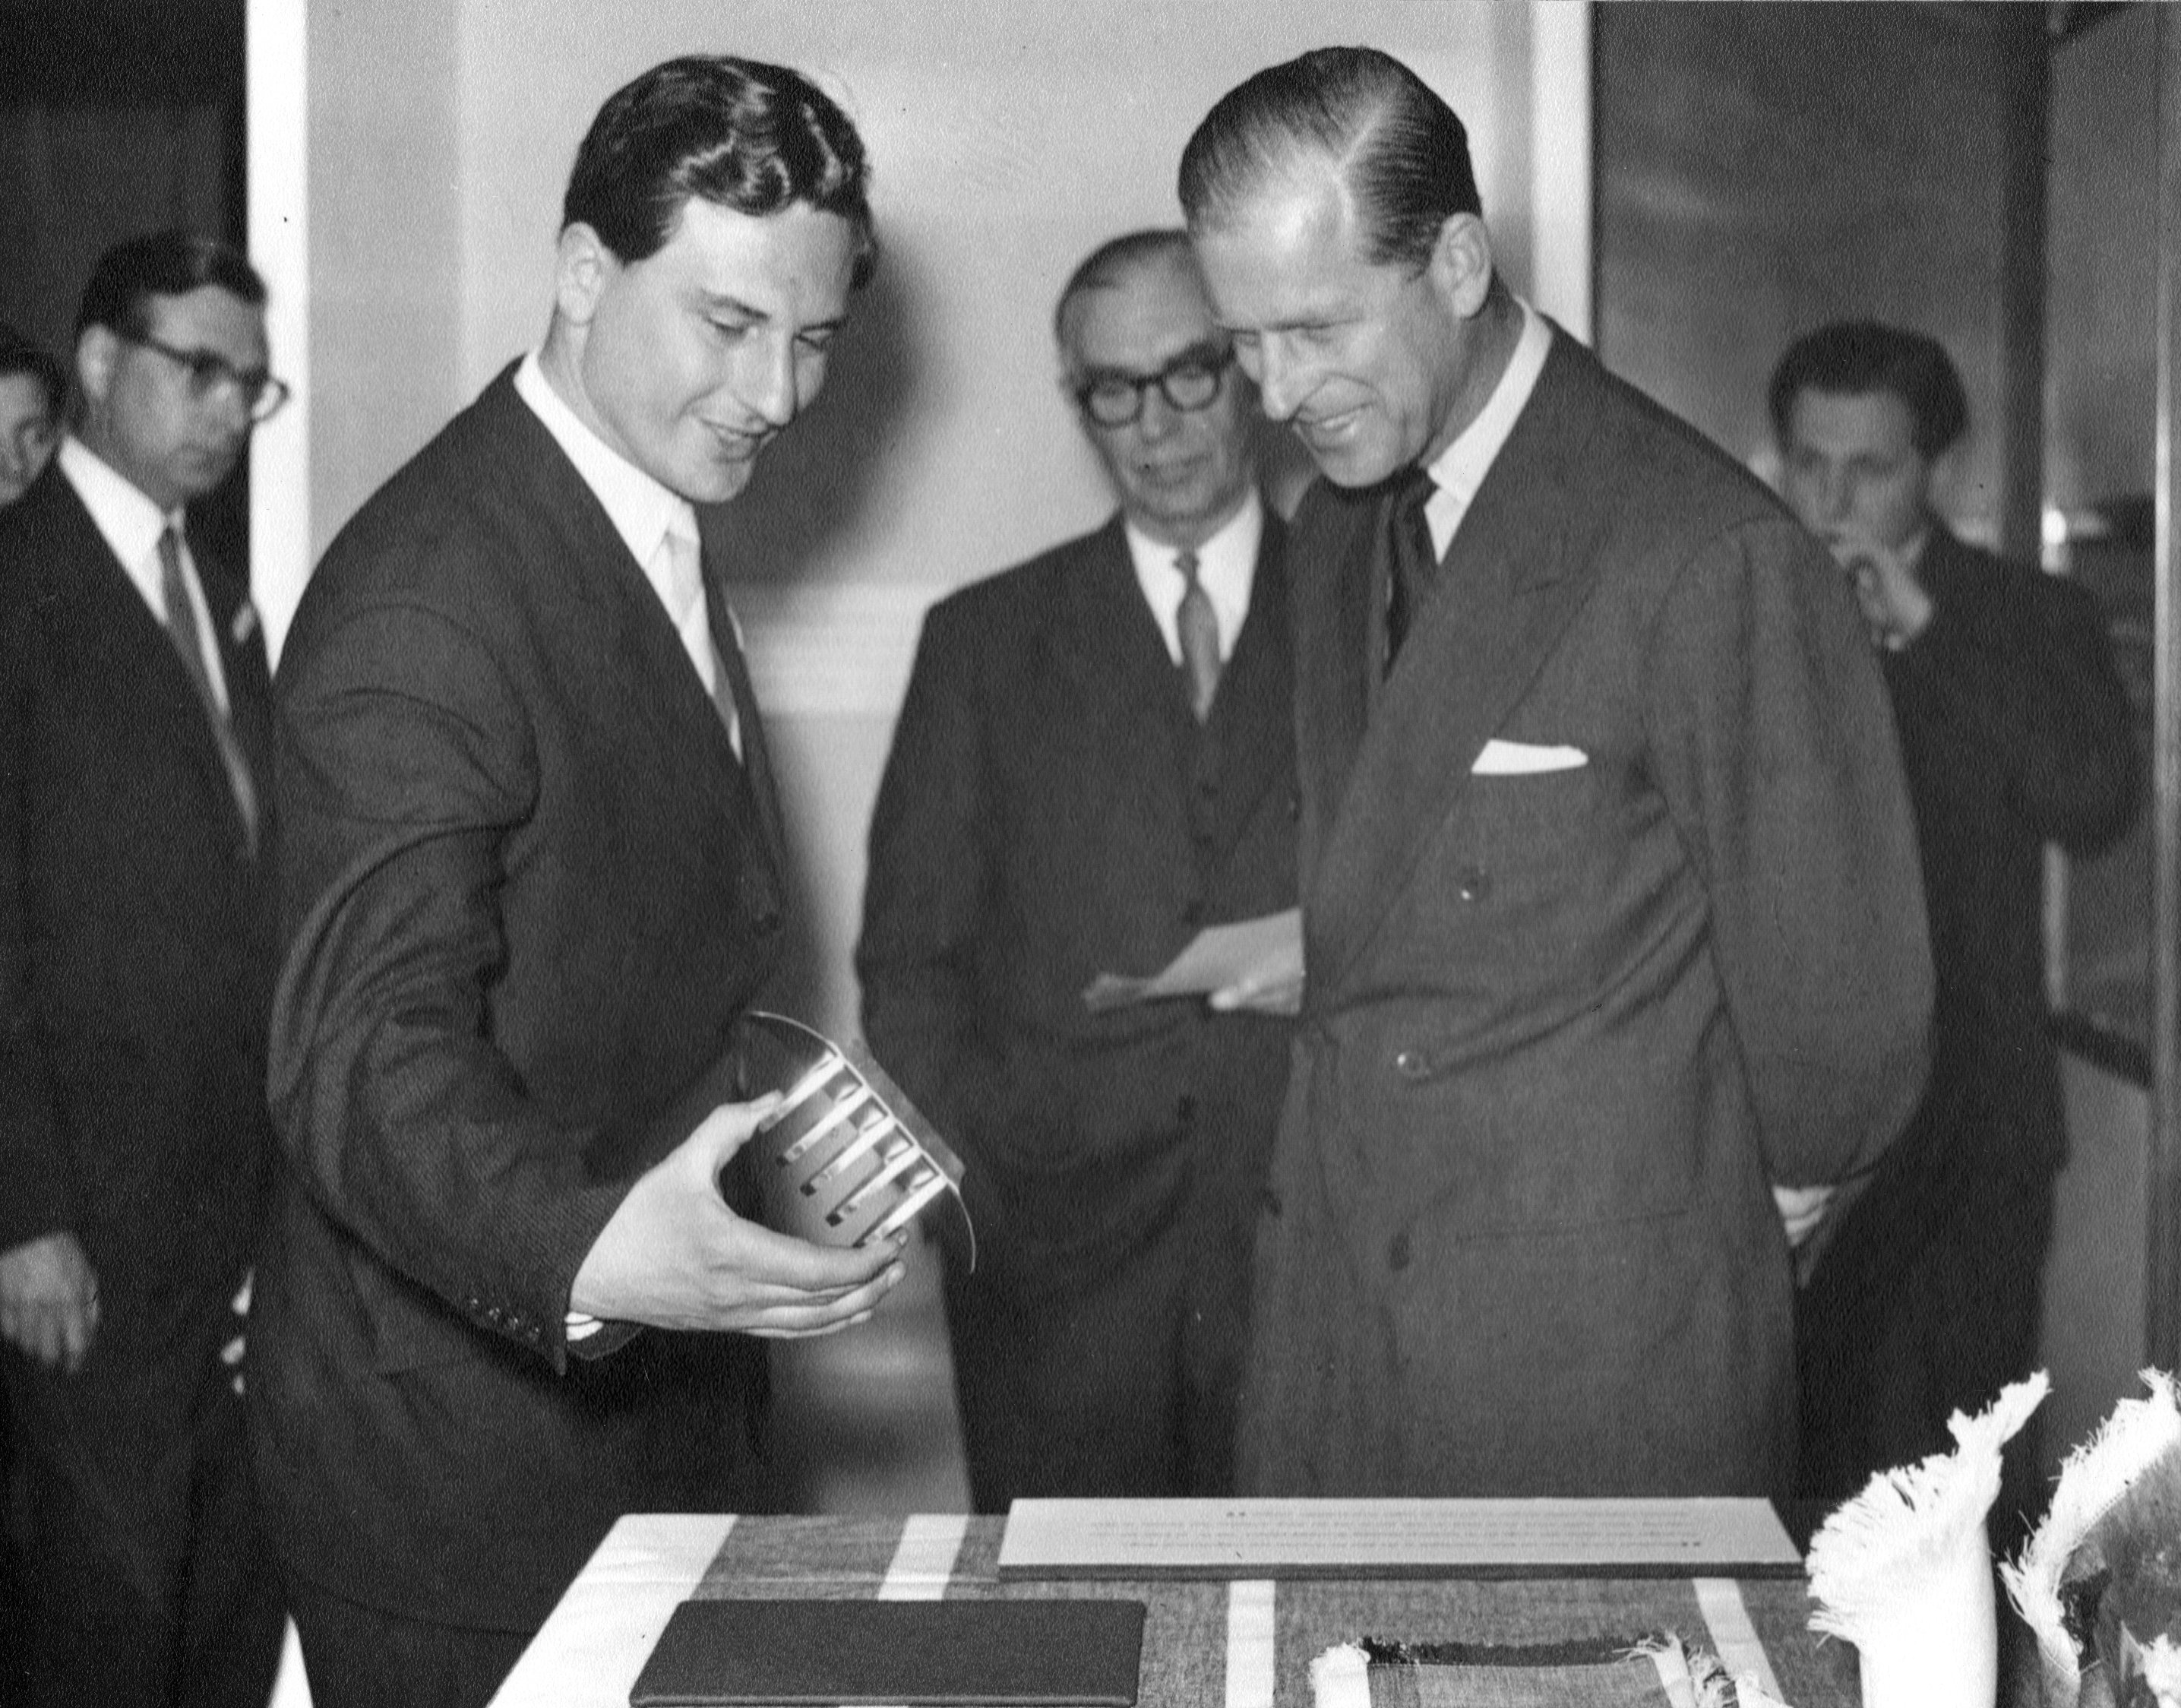 Robert Welch receiving a design award from HRH Duke of Edinburgh in 1957